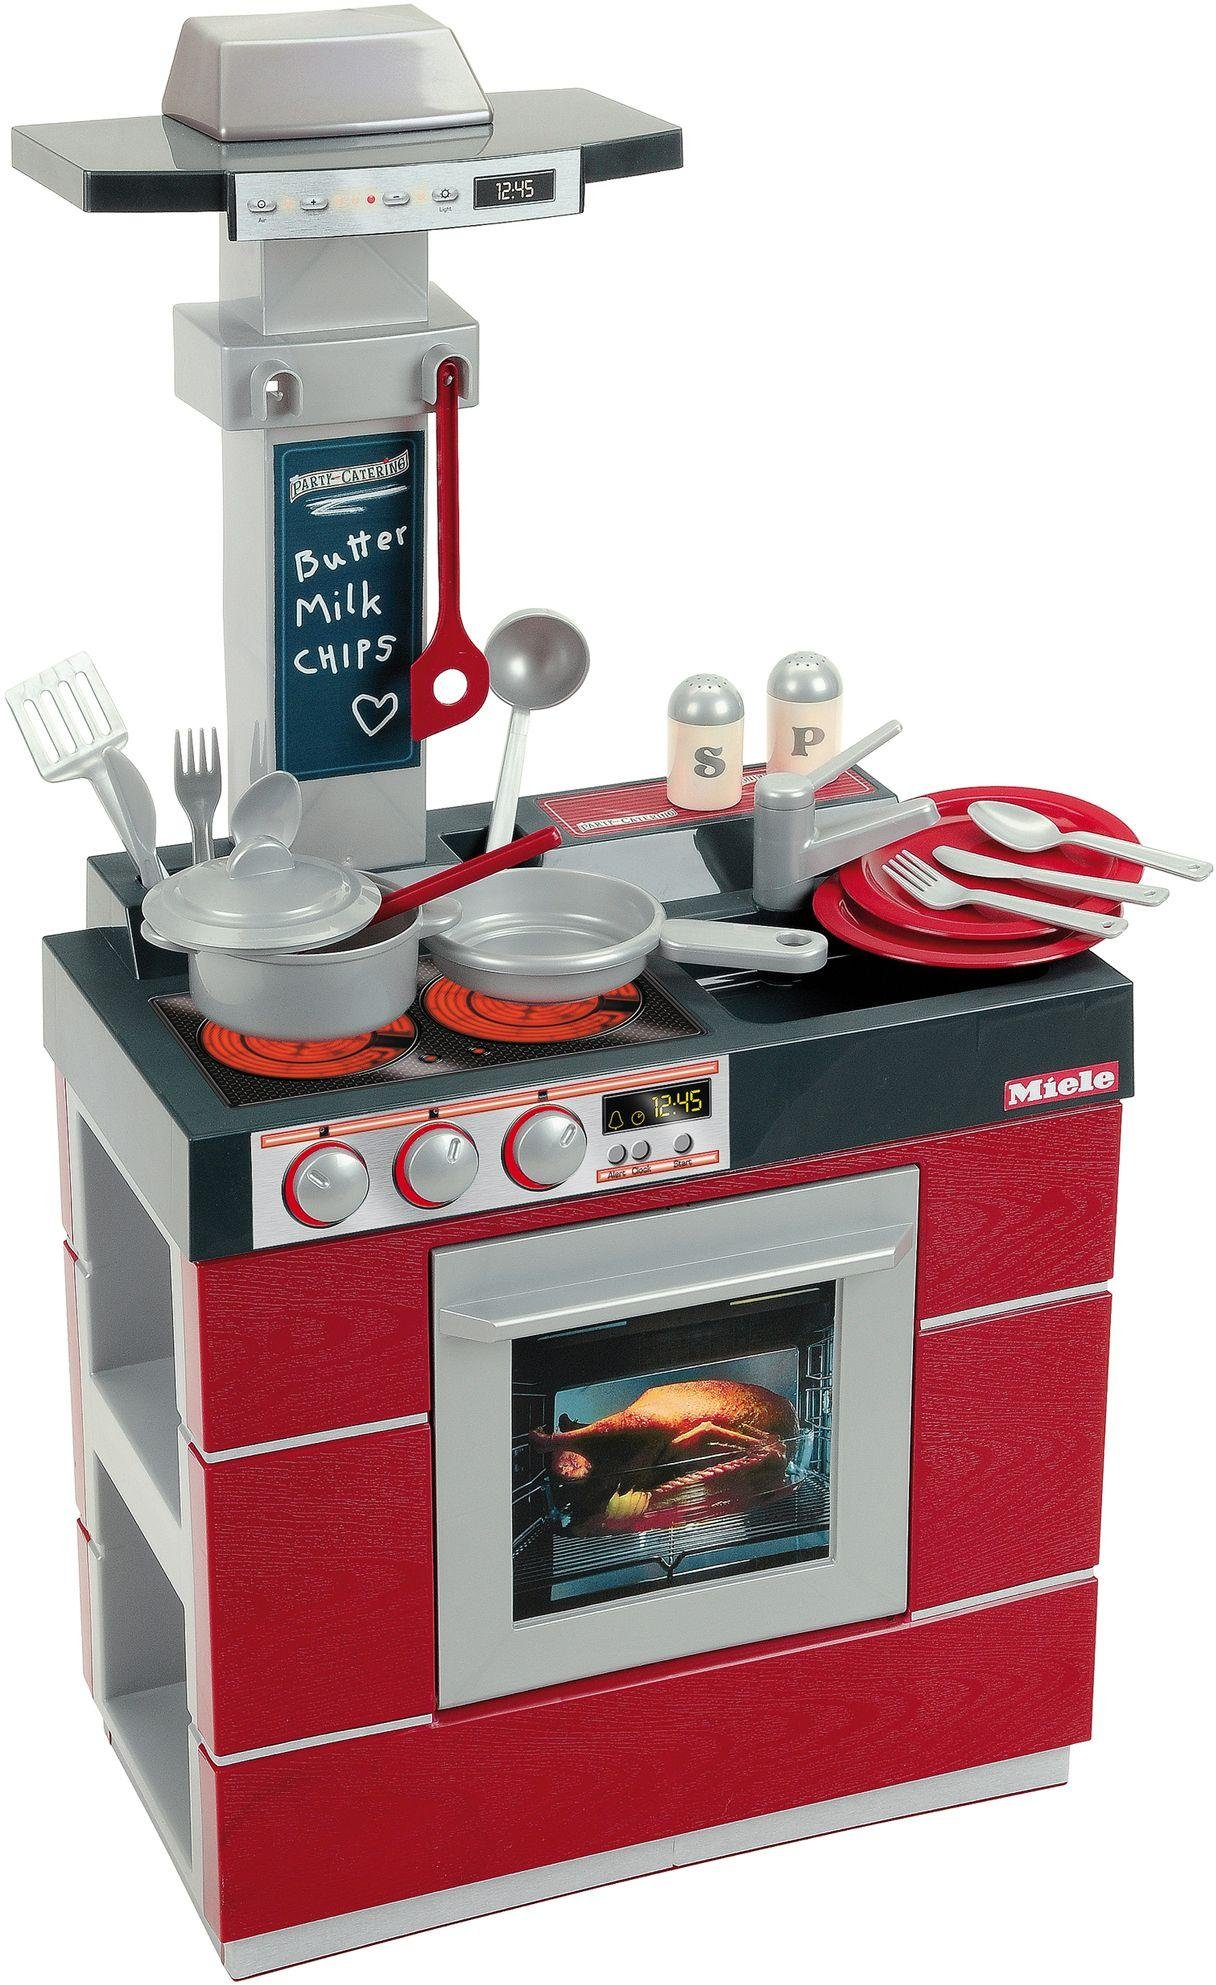 Image of Miele - Compact Toy Kitchen